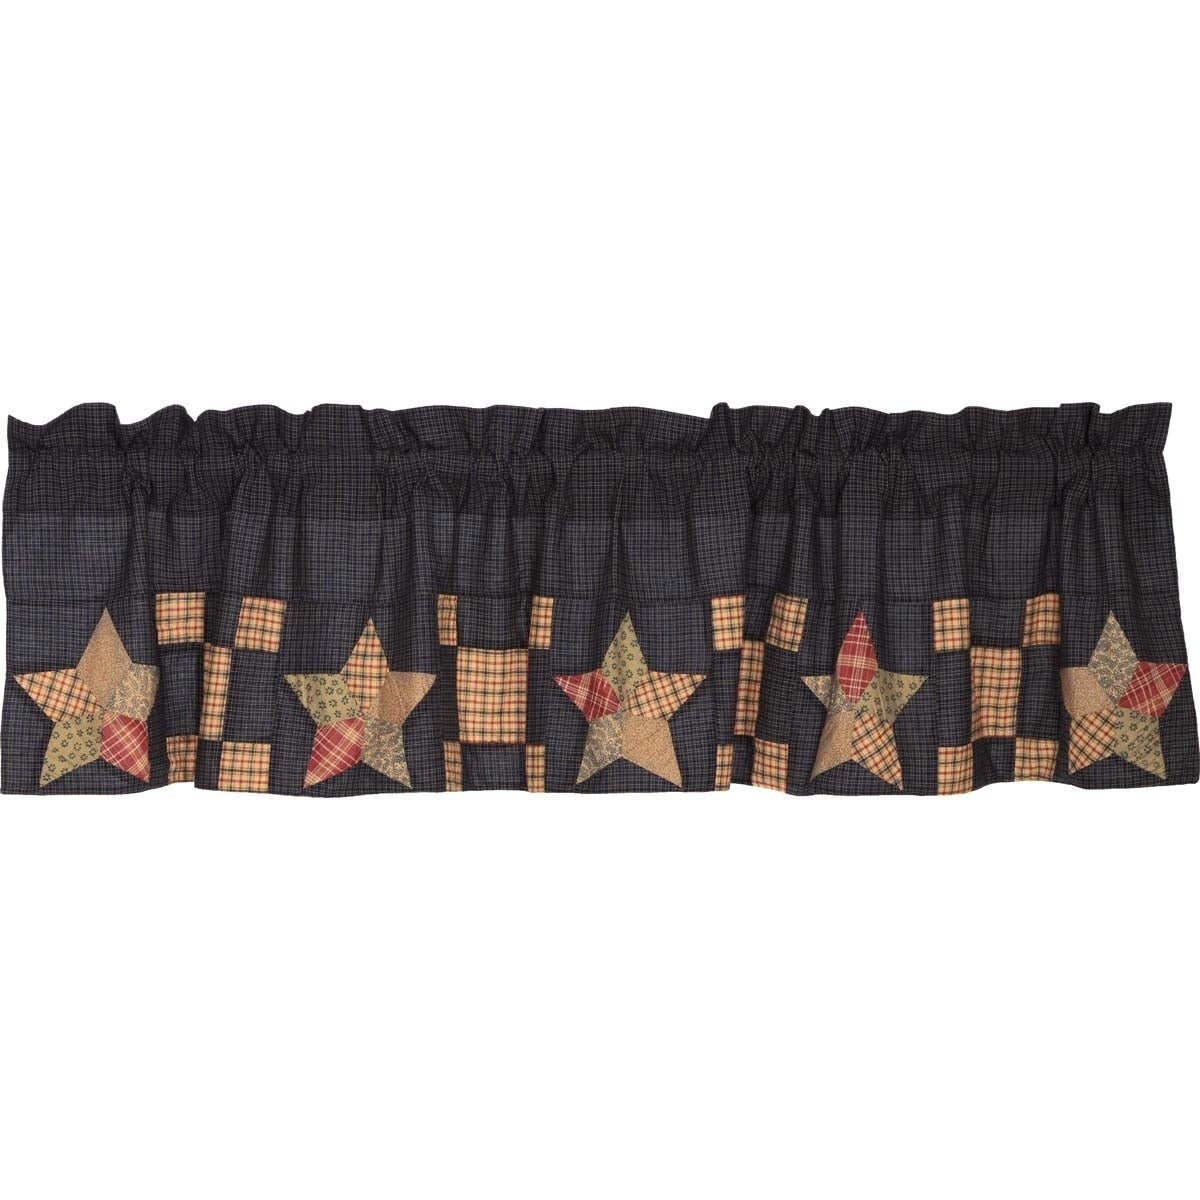 Tan Americana Kitchen Curtains Vhc Arlington Valance Rod Pocket Cotton Star Patchwork - 16x72 Blue Red Novelty Lined - Diamond Home USA